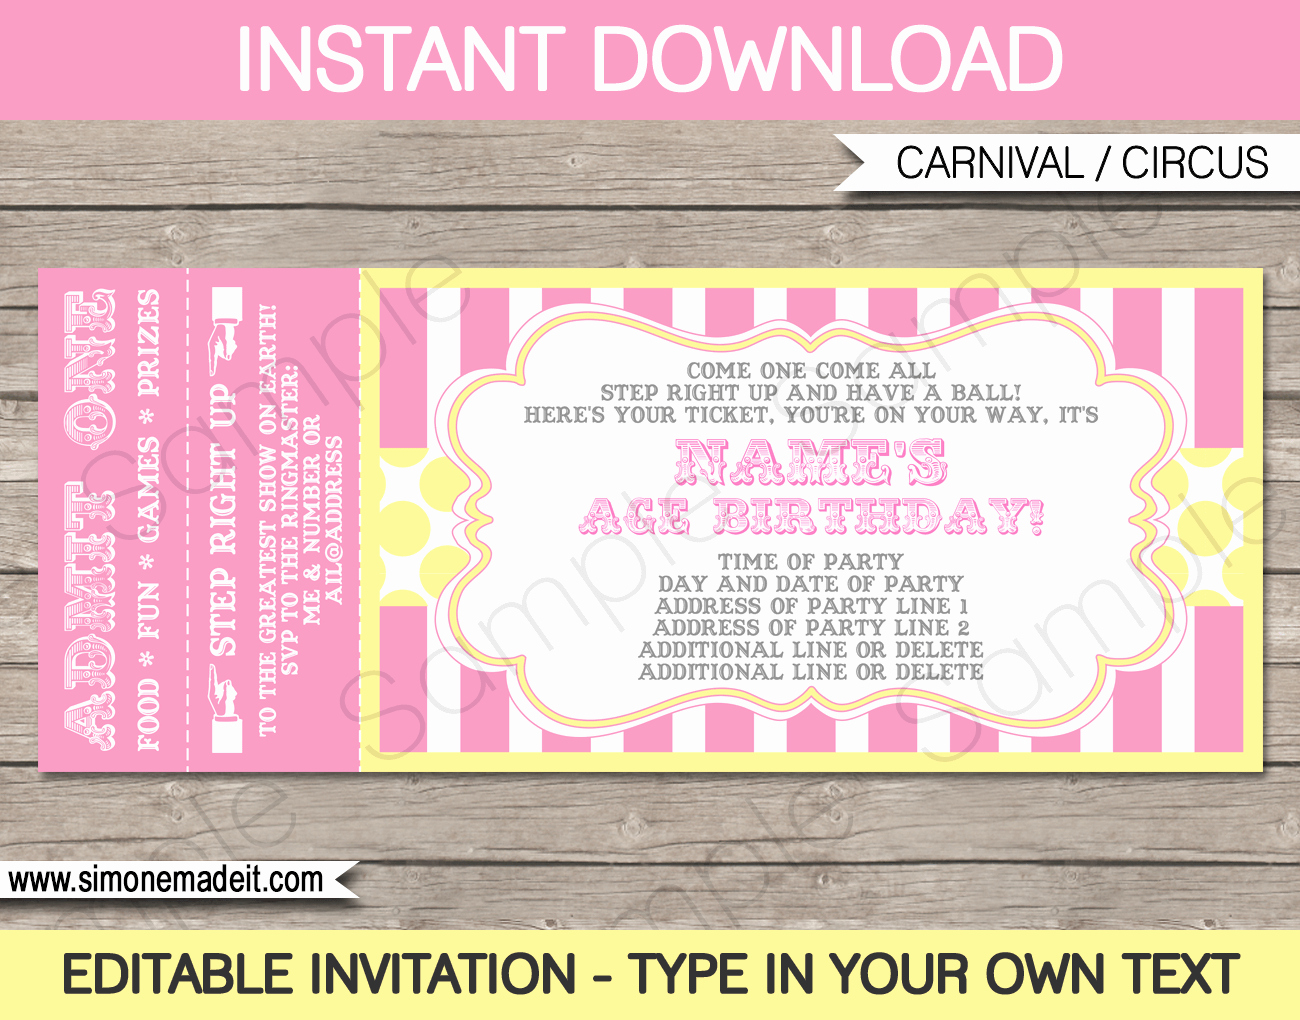 Carnival Invitation Template Free Awesome Carnival Birthday Ticket Invitations Template Carnival